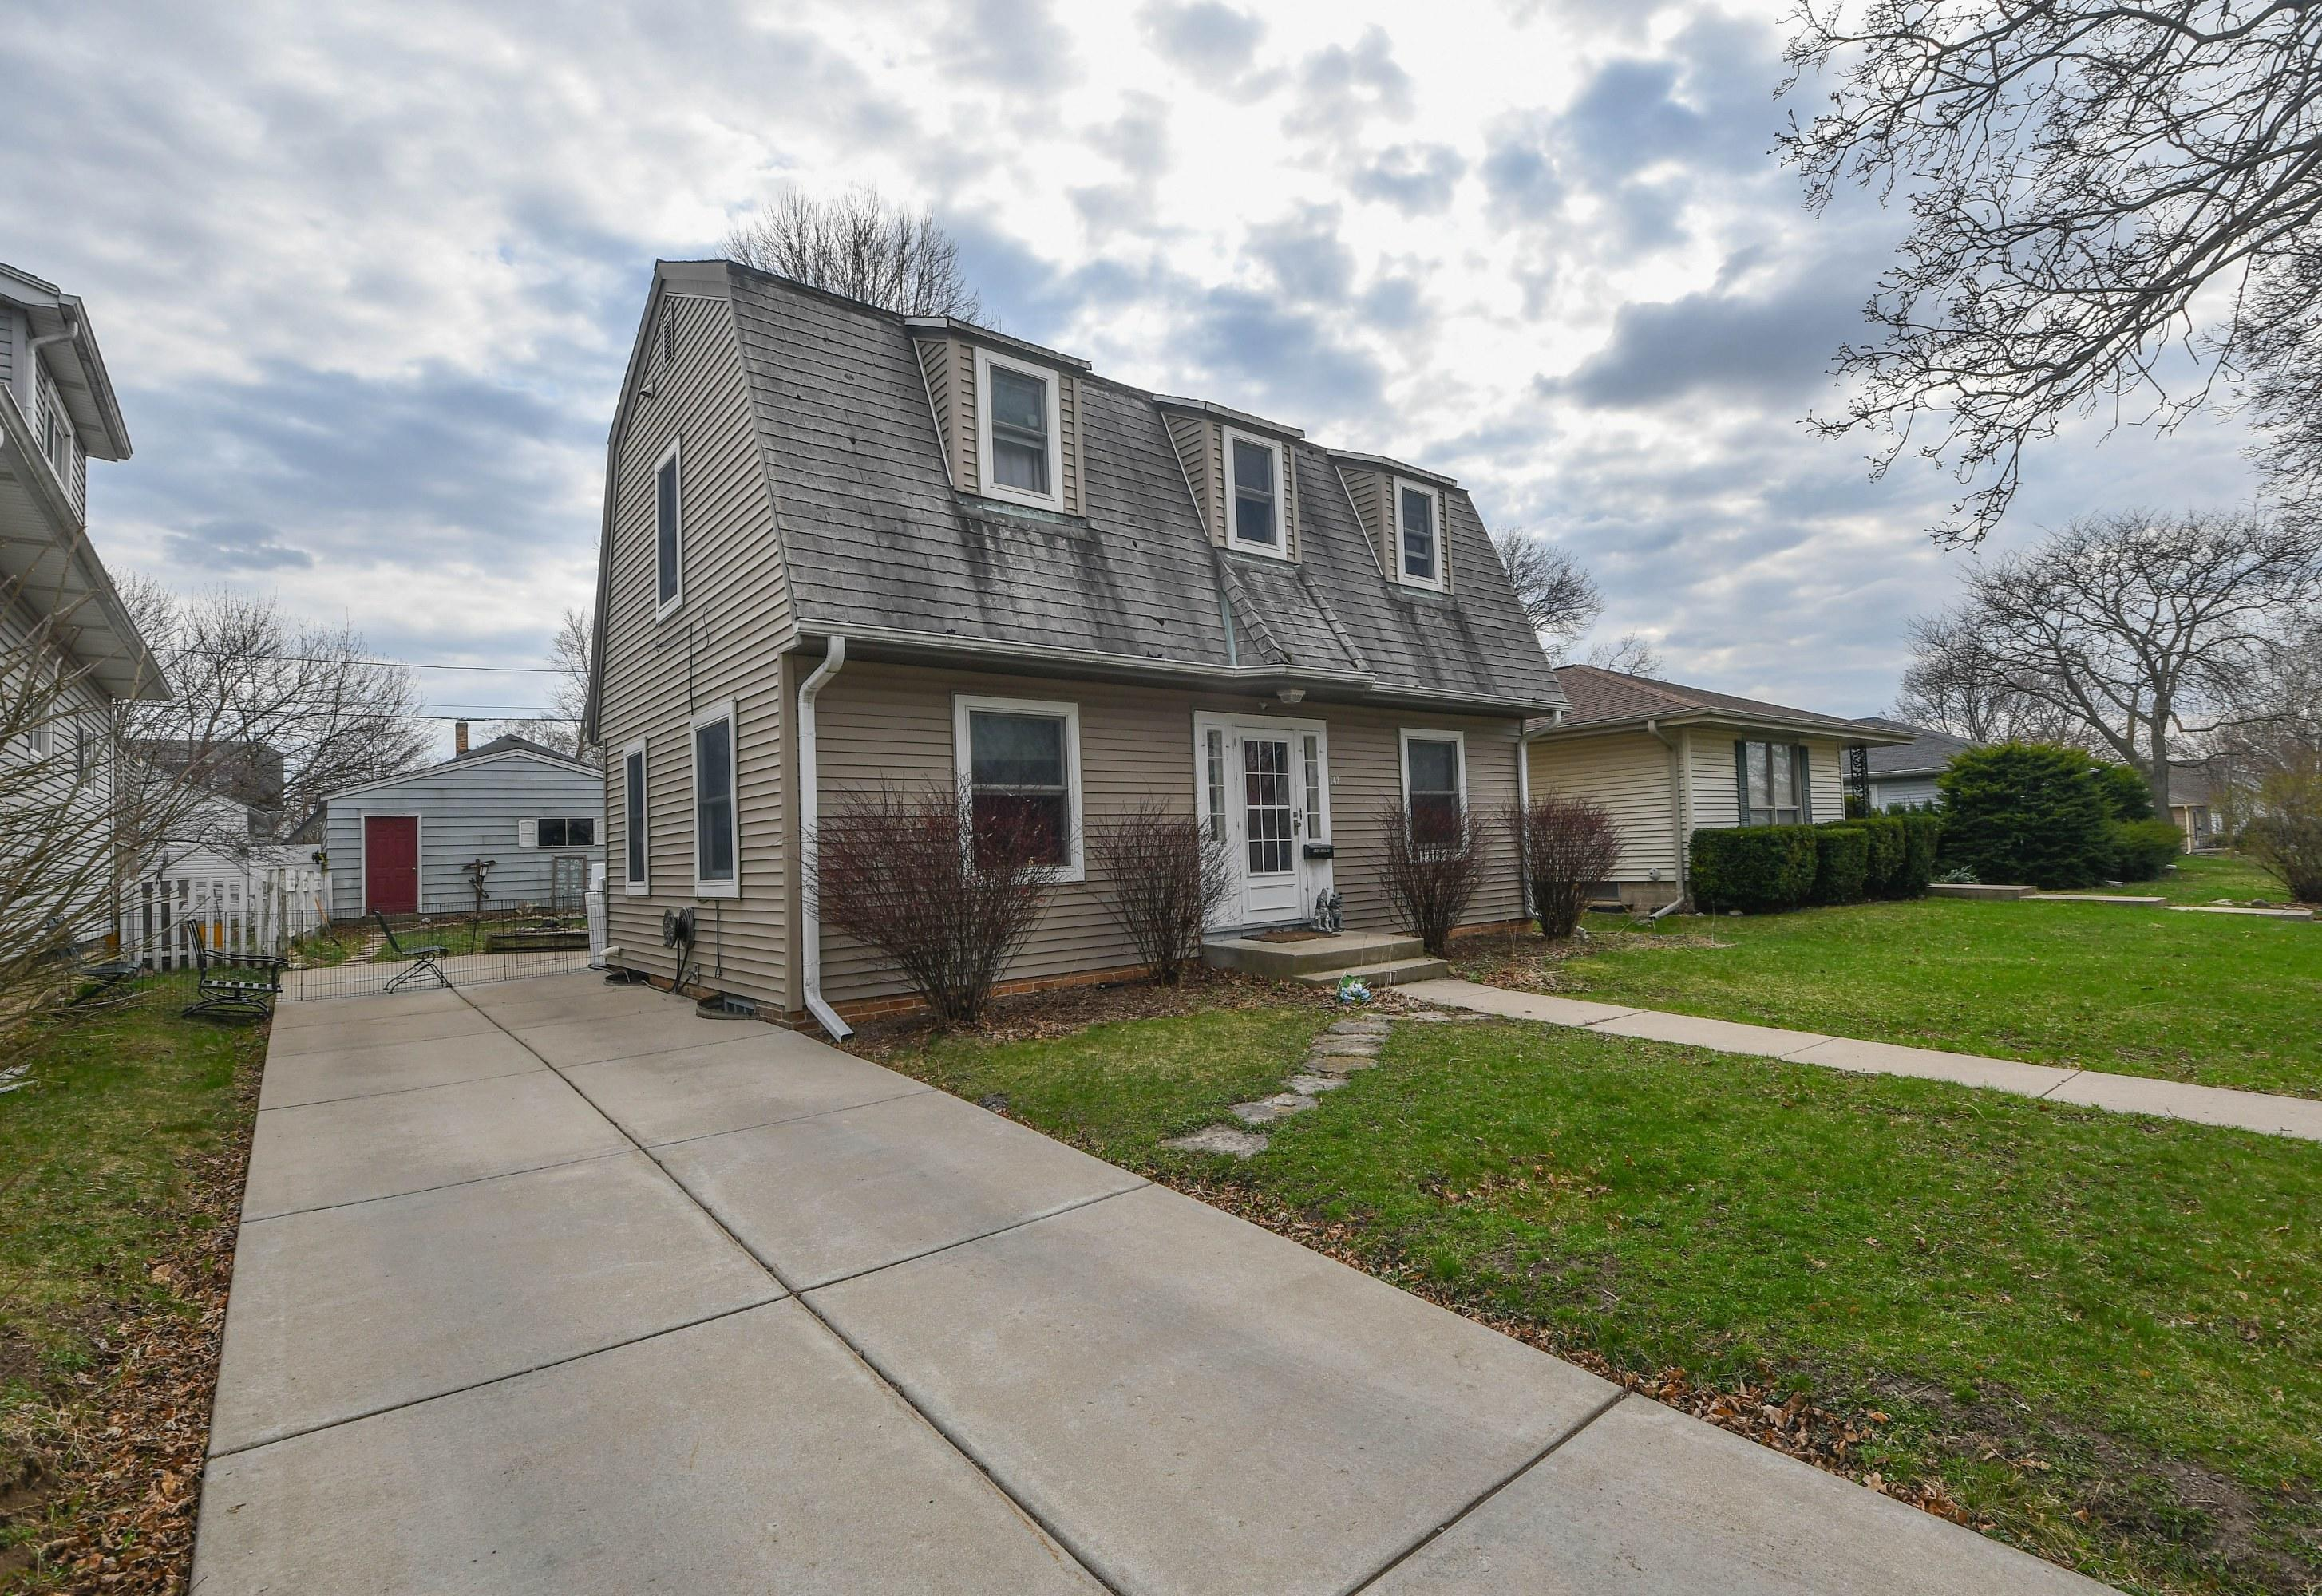 143 Wilson Ave, Waukesha, Wisconsin 53186, 2 Bedrooms Bedrooms, ,1 BathroomBathrooms,Single-Family,For Sale,Wilson Ave,1734639